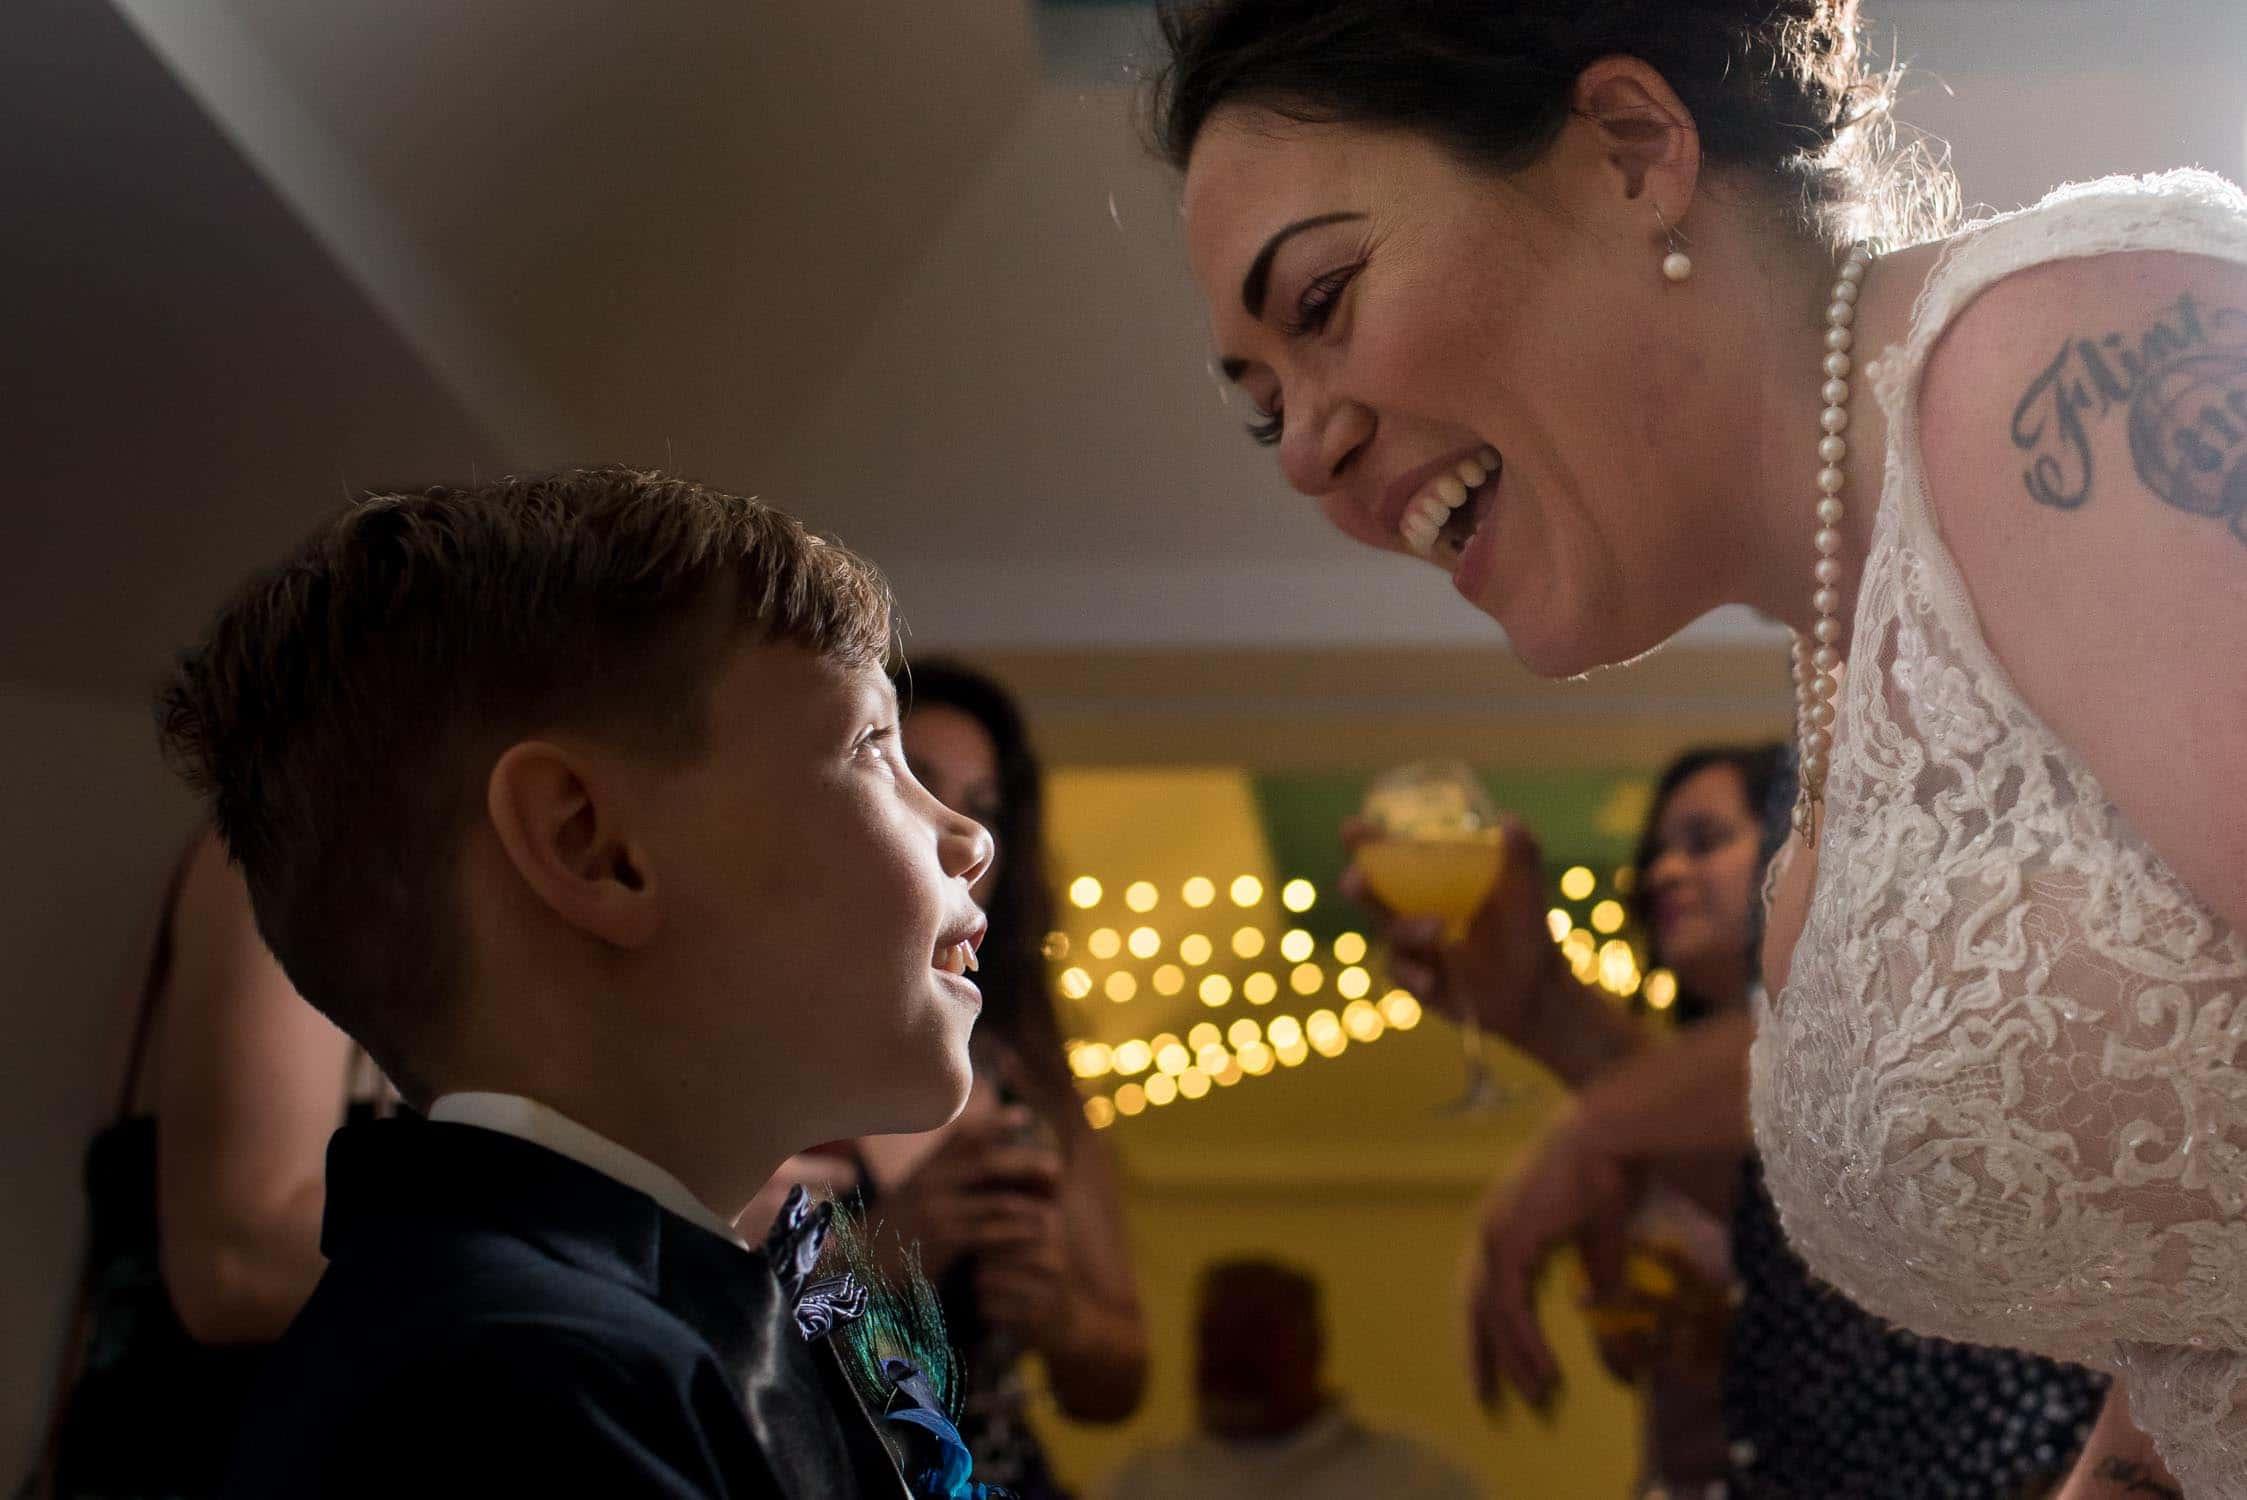 Mother and son smiling during wedding reception